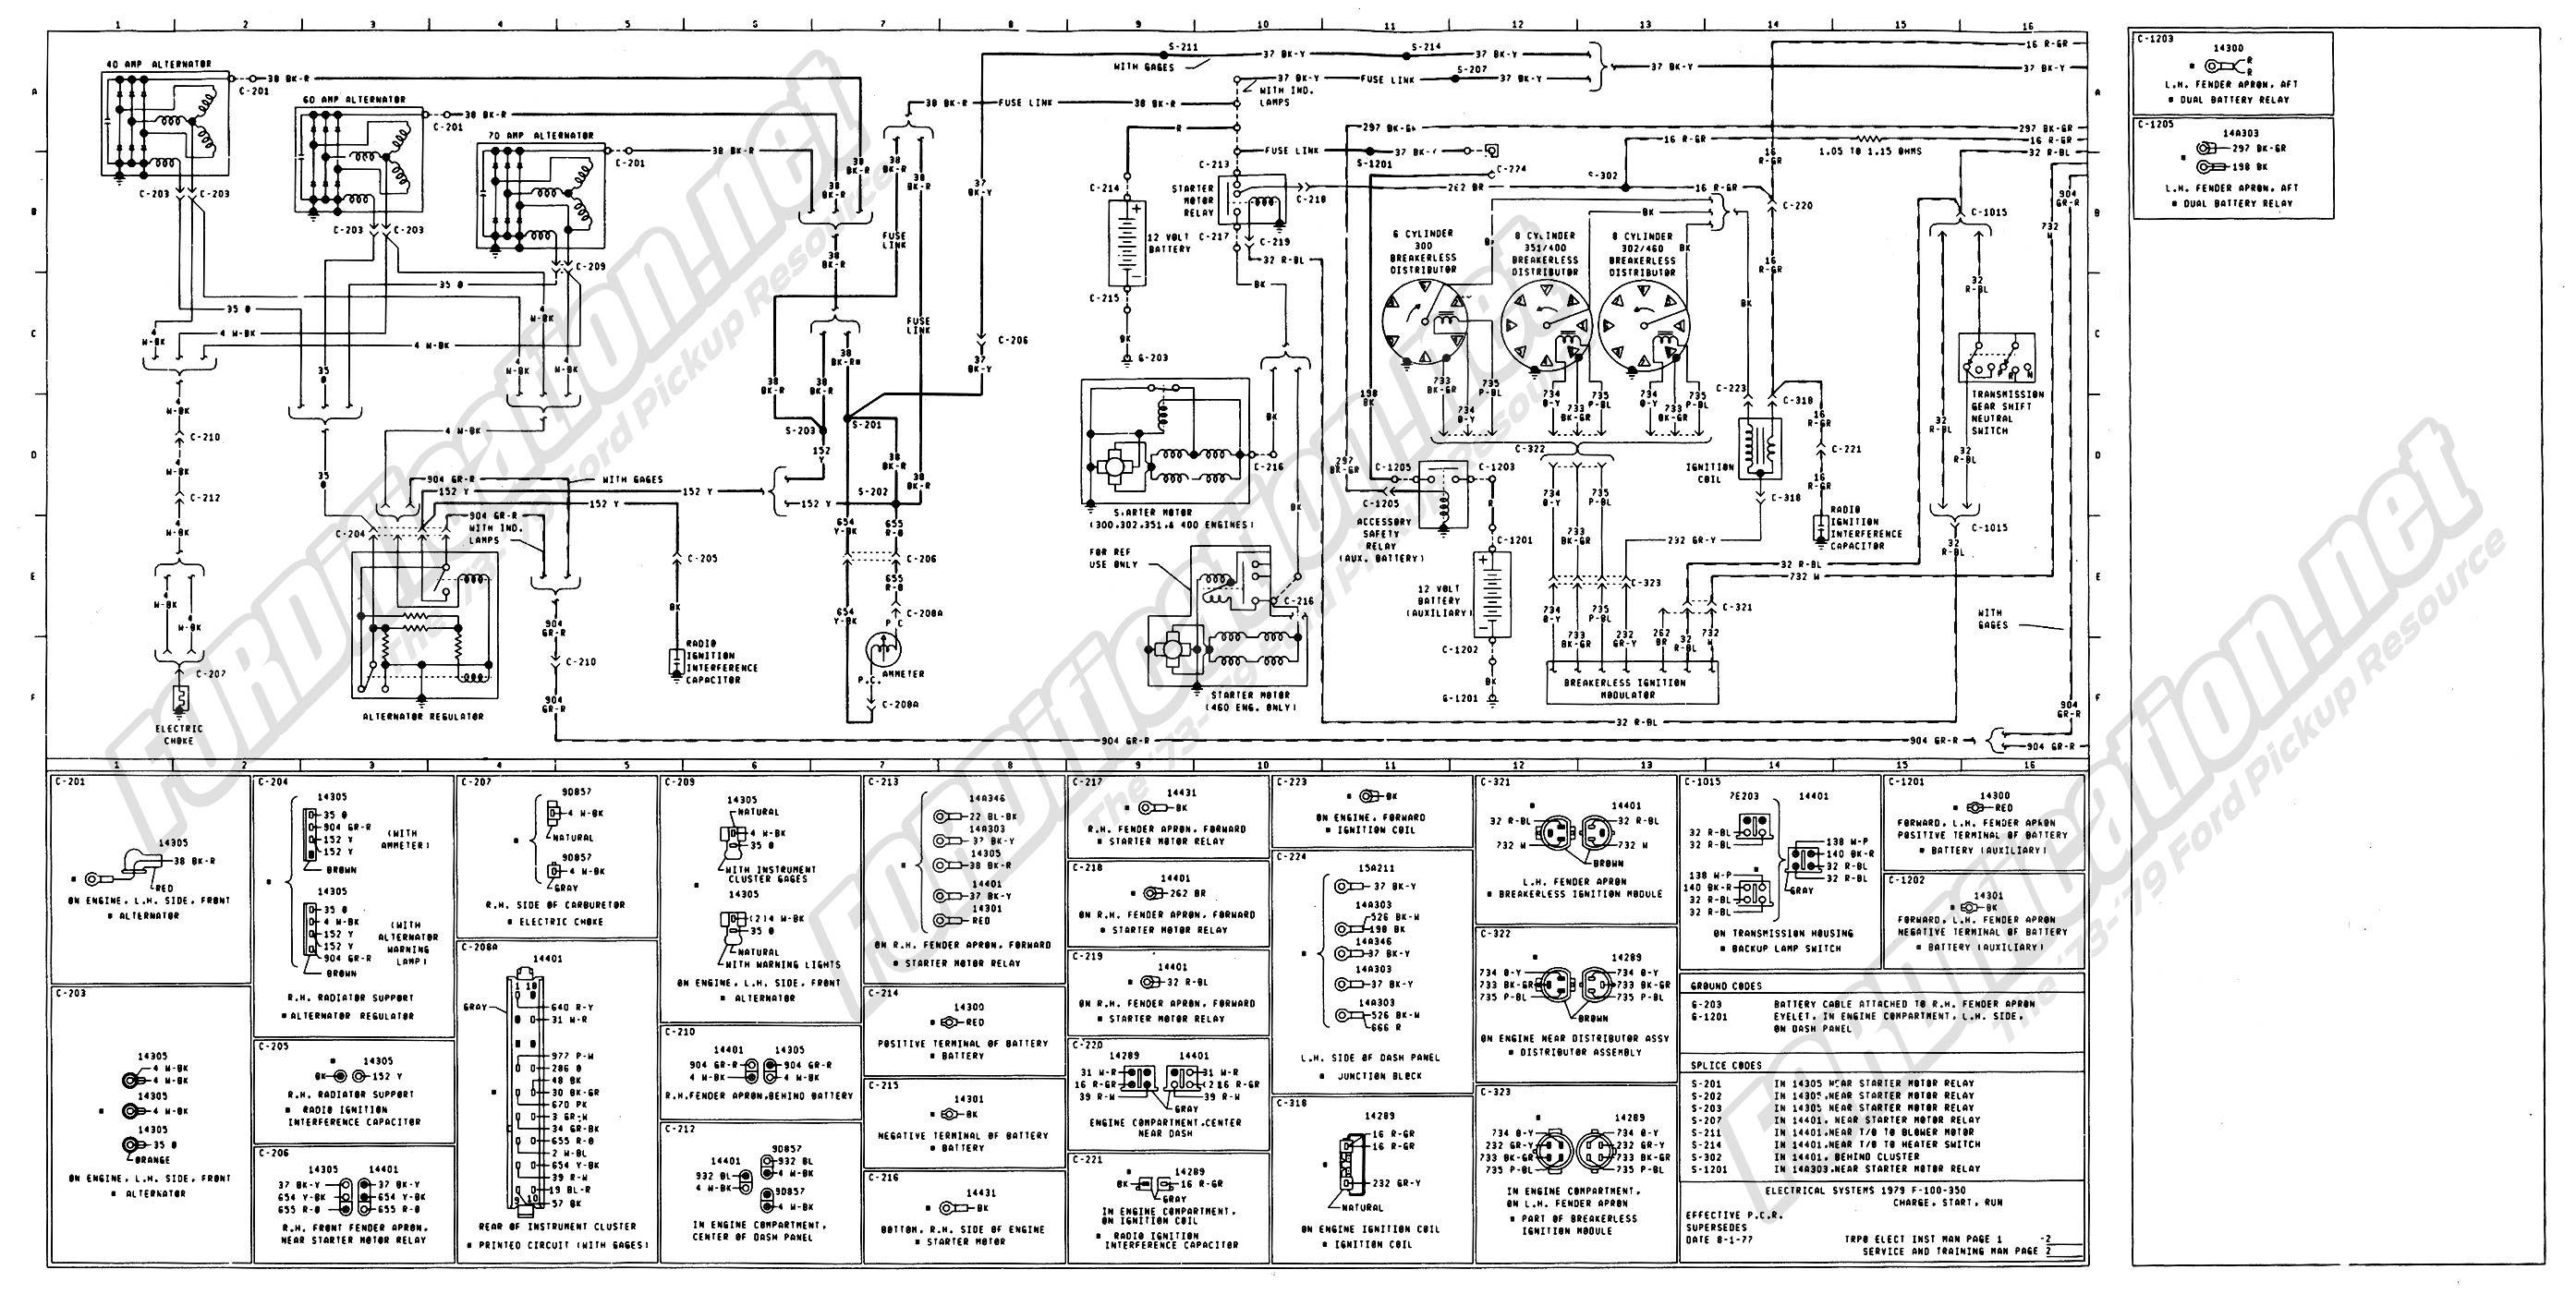 1973 1979 ford truck wiring diagrams schematics fordification net rh fordification net Ford 800 Tractor Wiring Diagram 1998 Ford Truck Wiring Diagrams